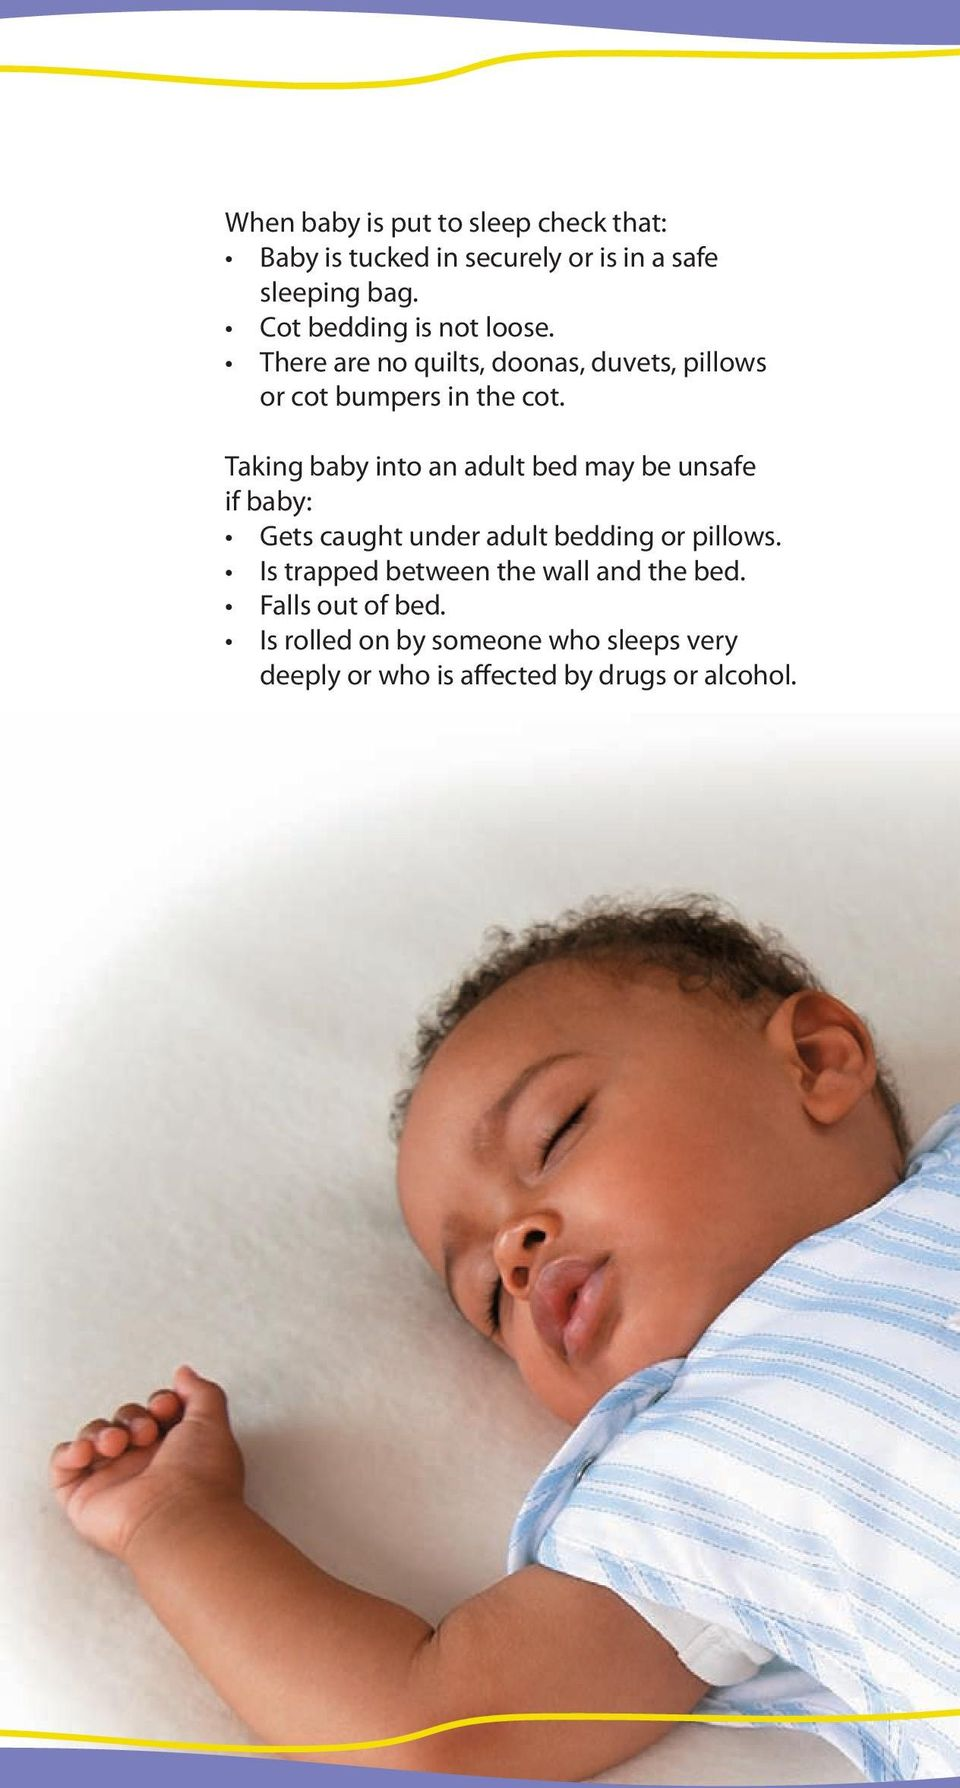 Taking baby into an adult bed may be unsafe if baby: Gets caught under adult bedding or pillows.